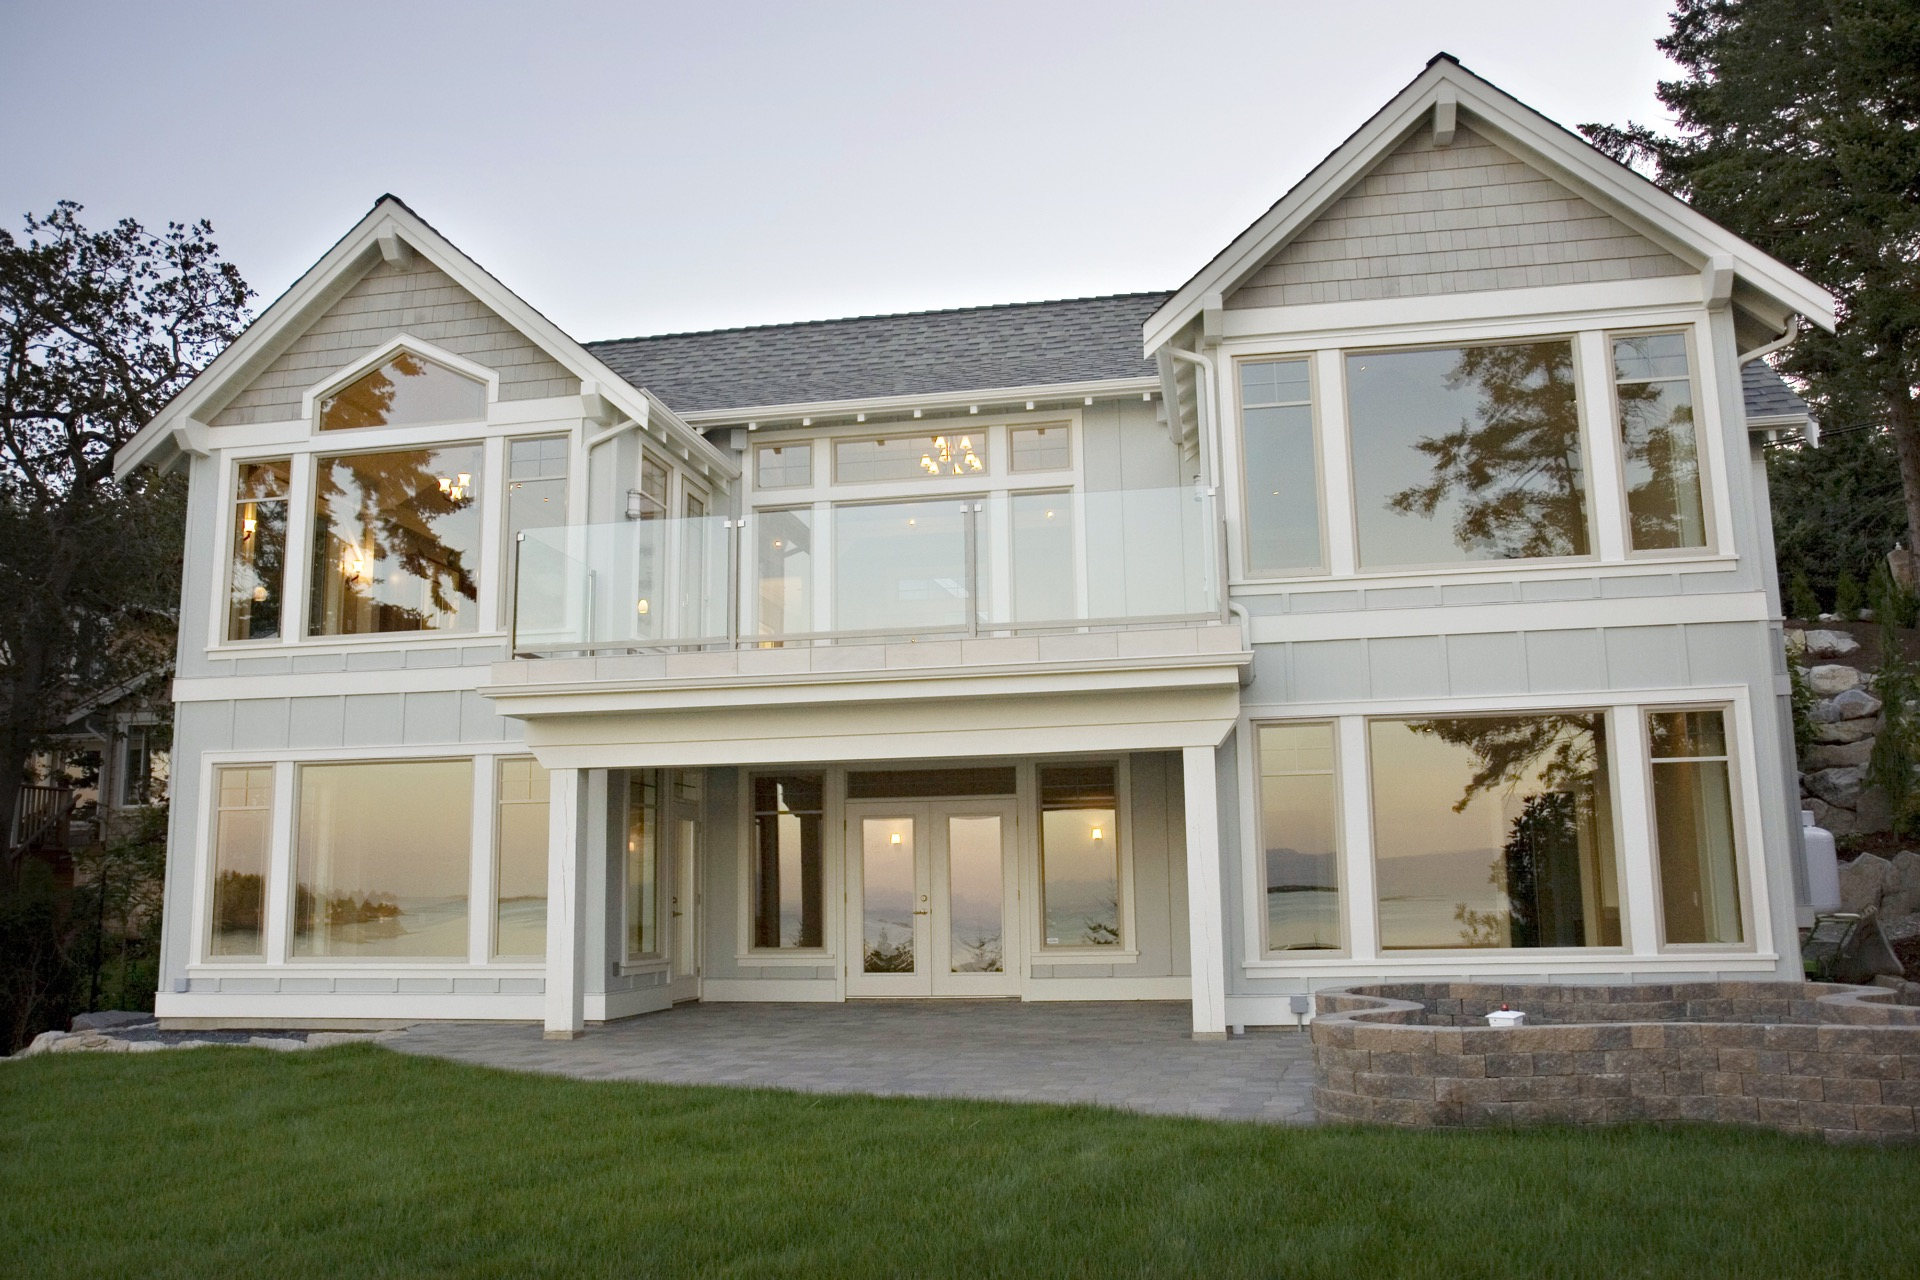 Paul Dabbs Custom Homes - Dolphin 84.jpg